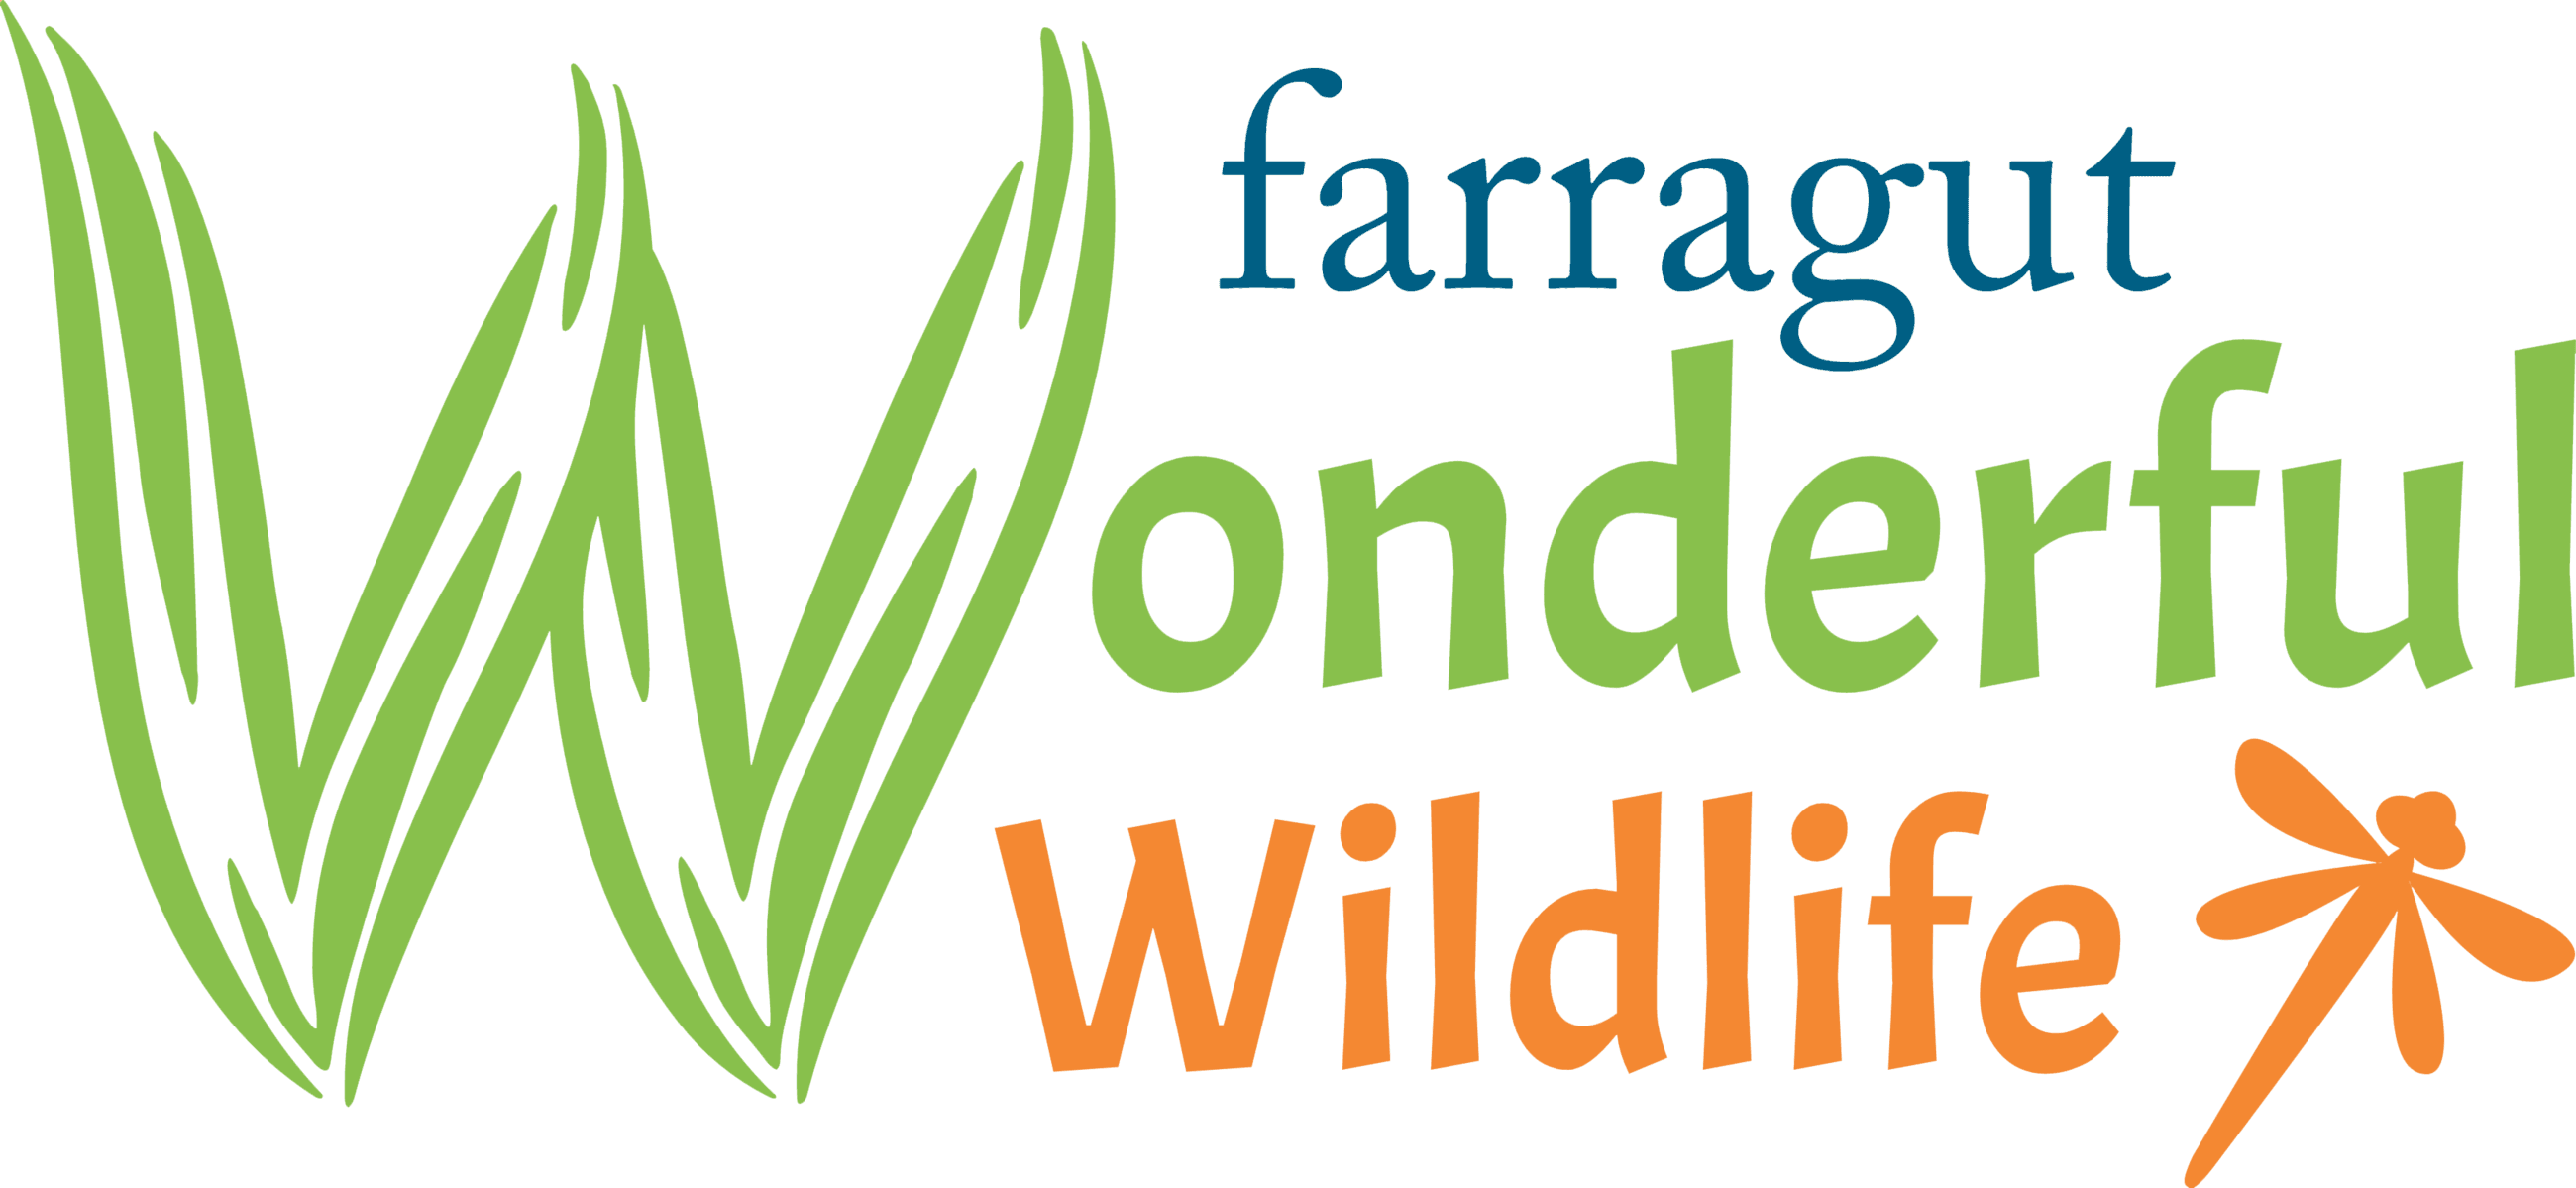 logo for Farragut Wonderful Wildlife in blue green and orange with a dragonfly